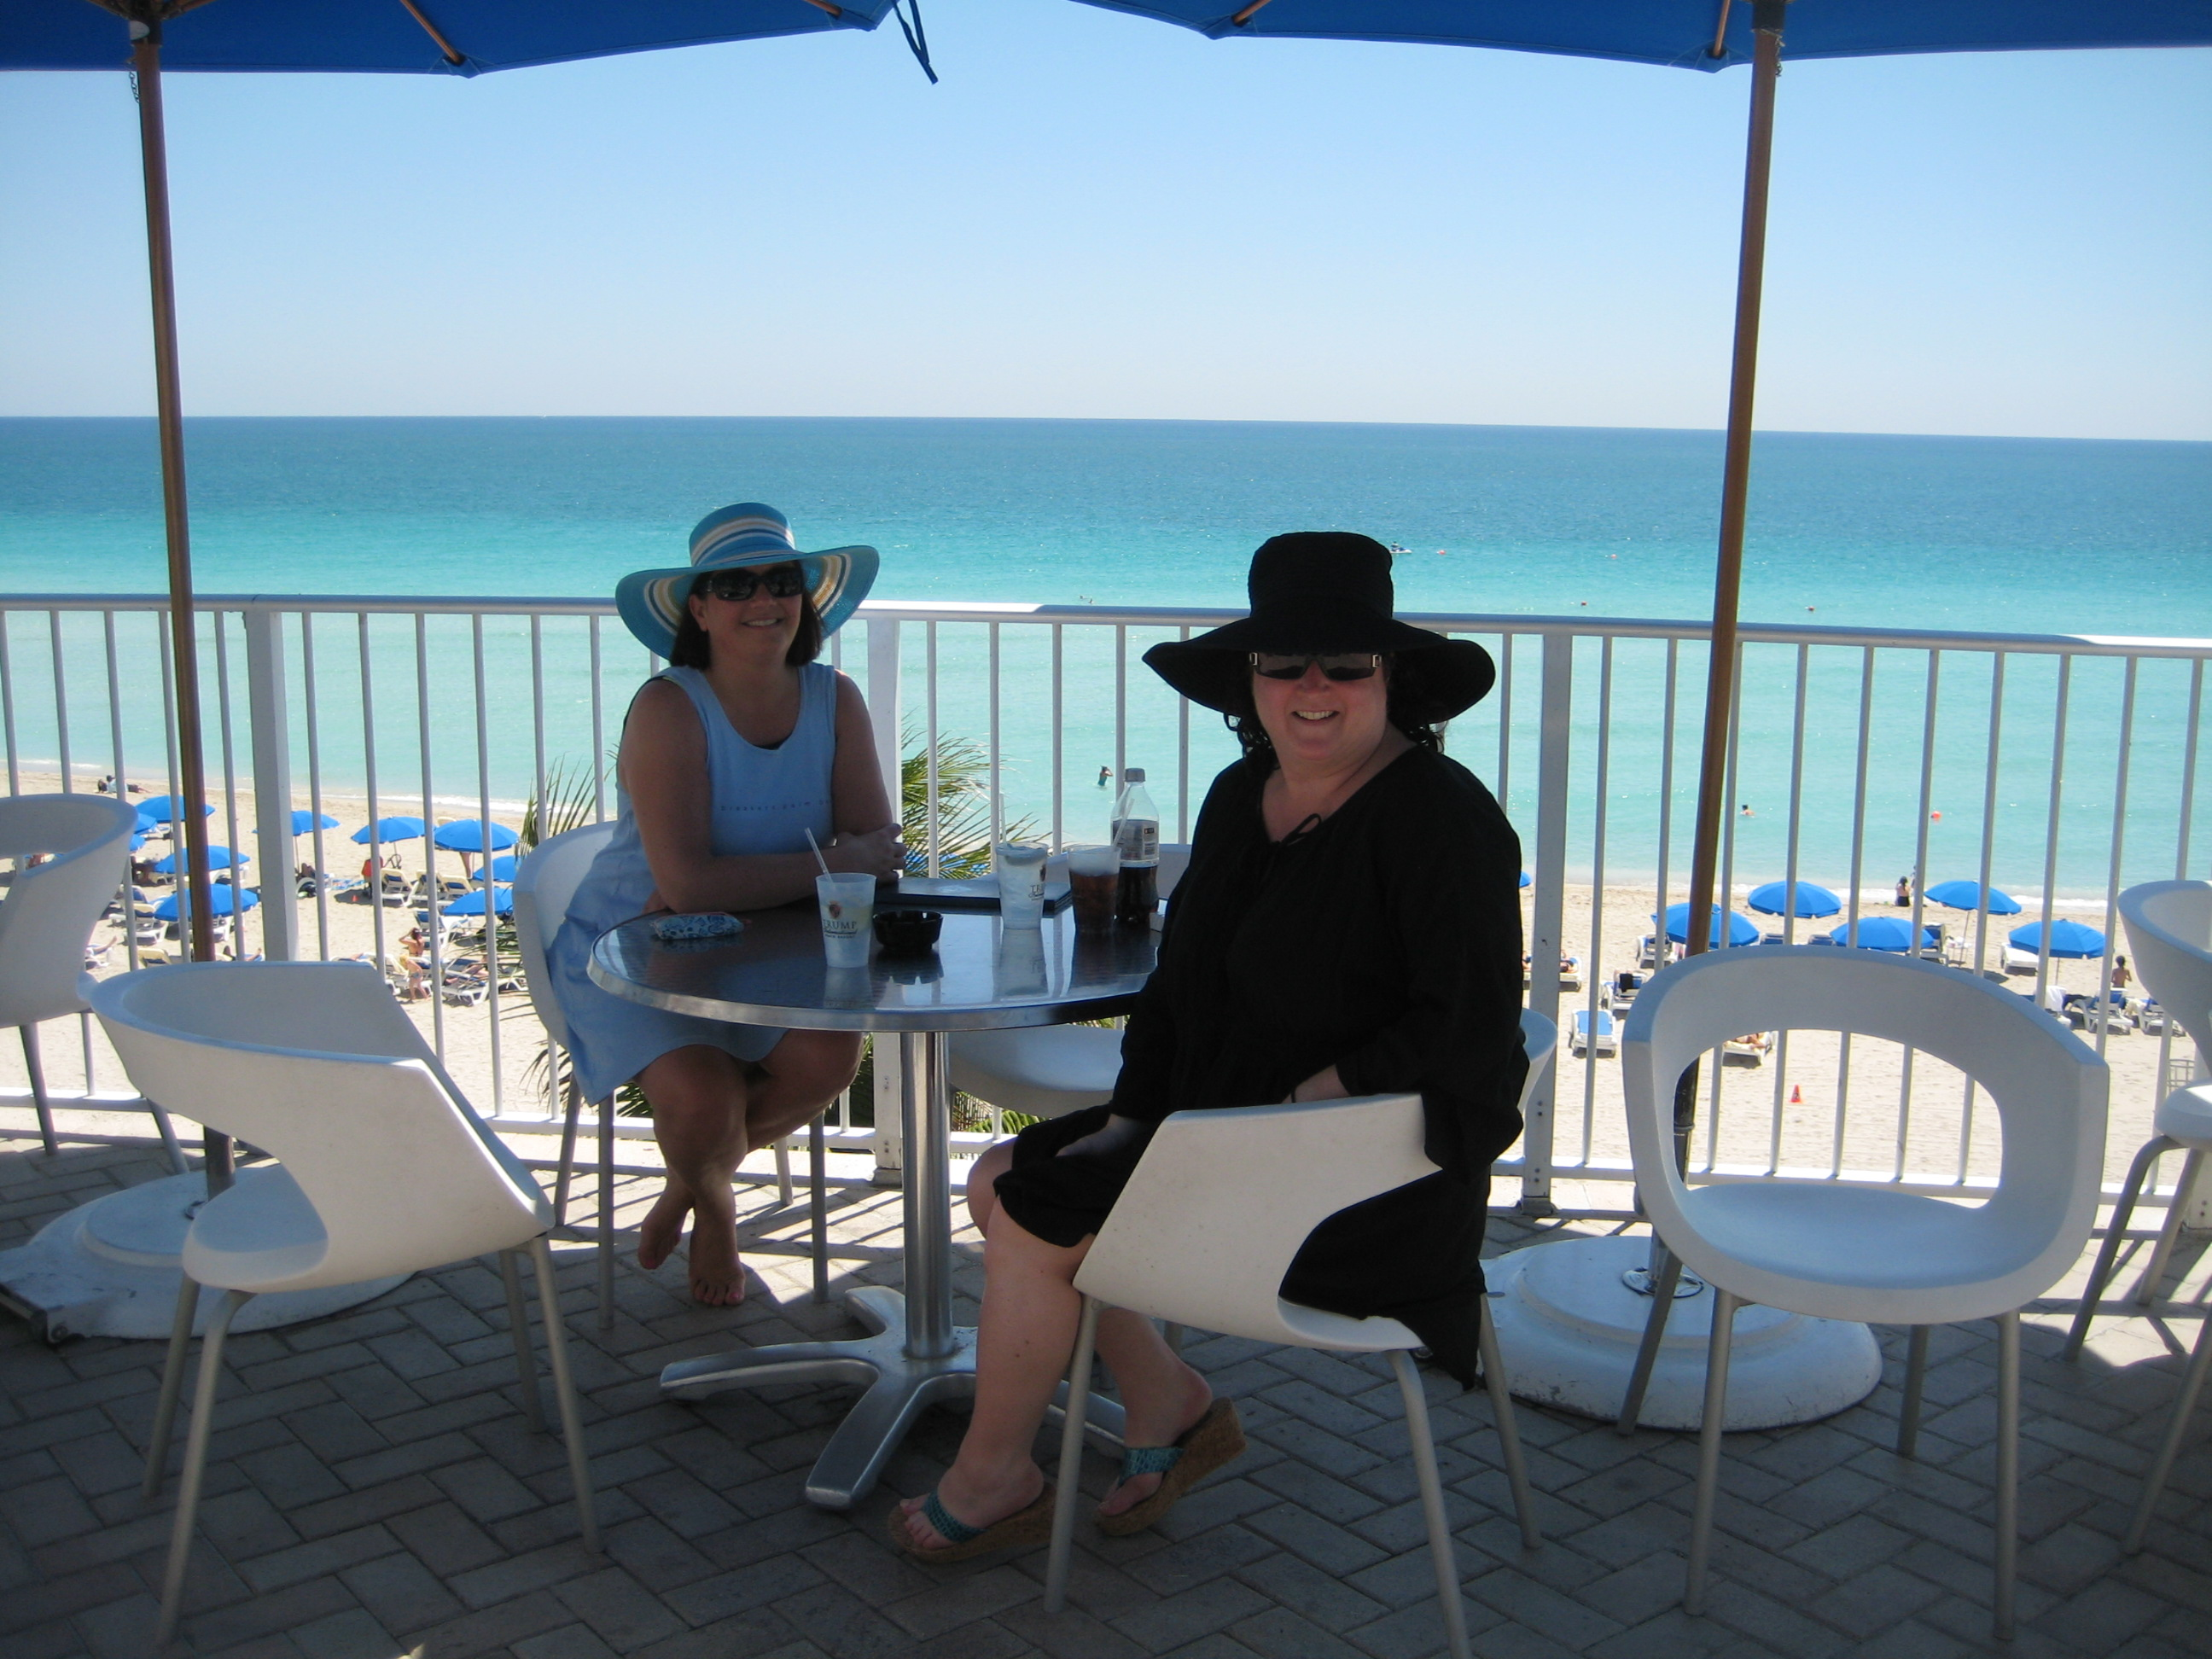 Giant beach hats are de riguer at the pool at the Trump in Miami